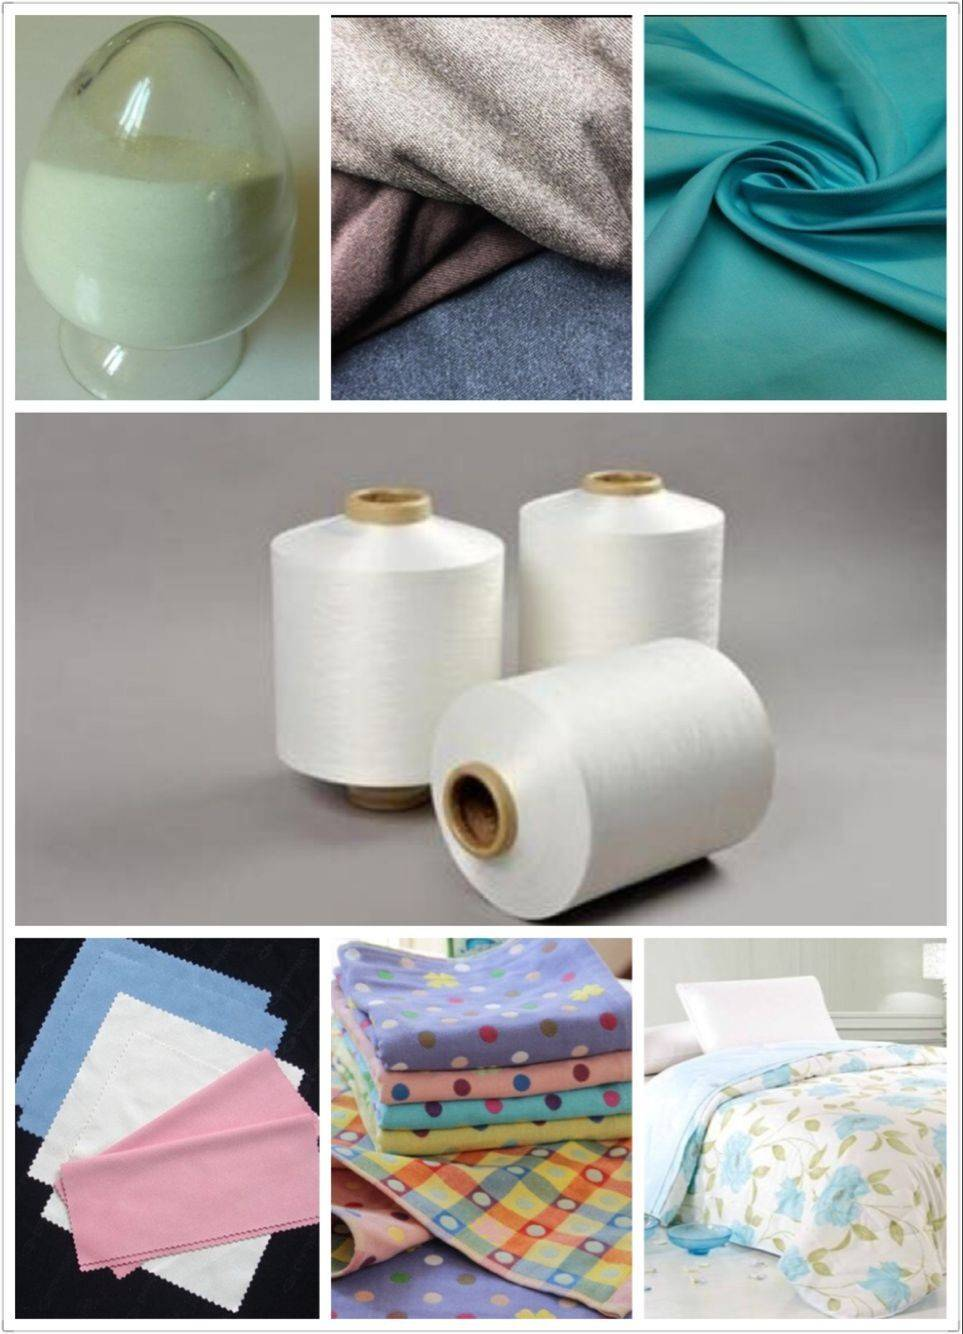 DTY Cationic N/P Microfiber Yarn High colorfastness Brighter Color Hygroscopic and anti-static abili